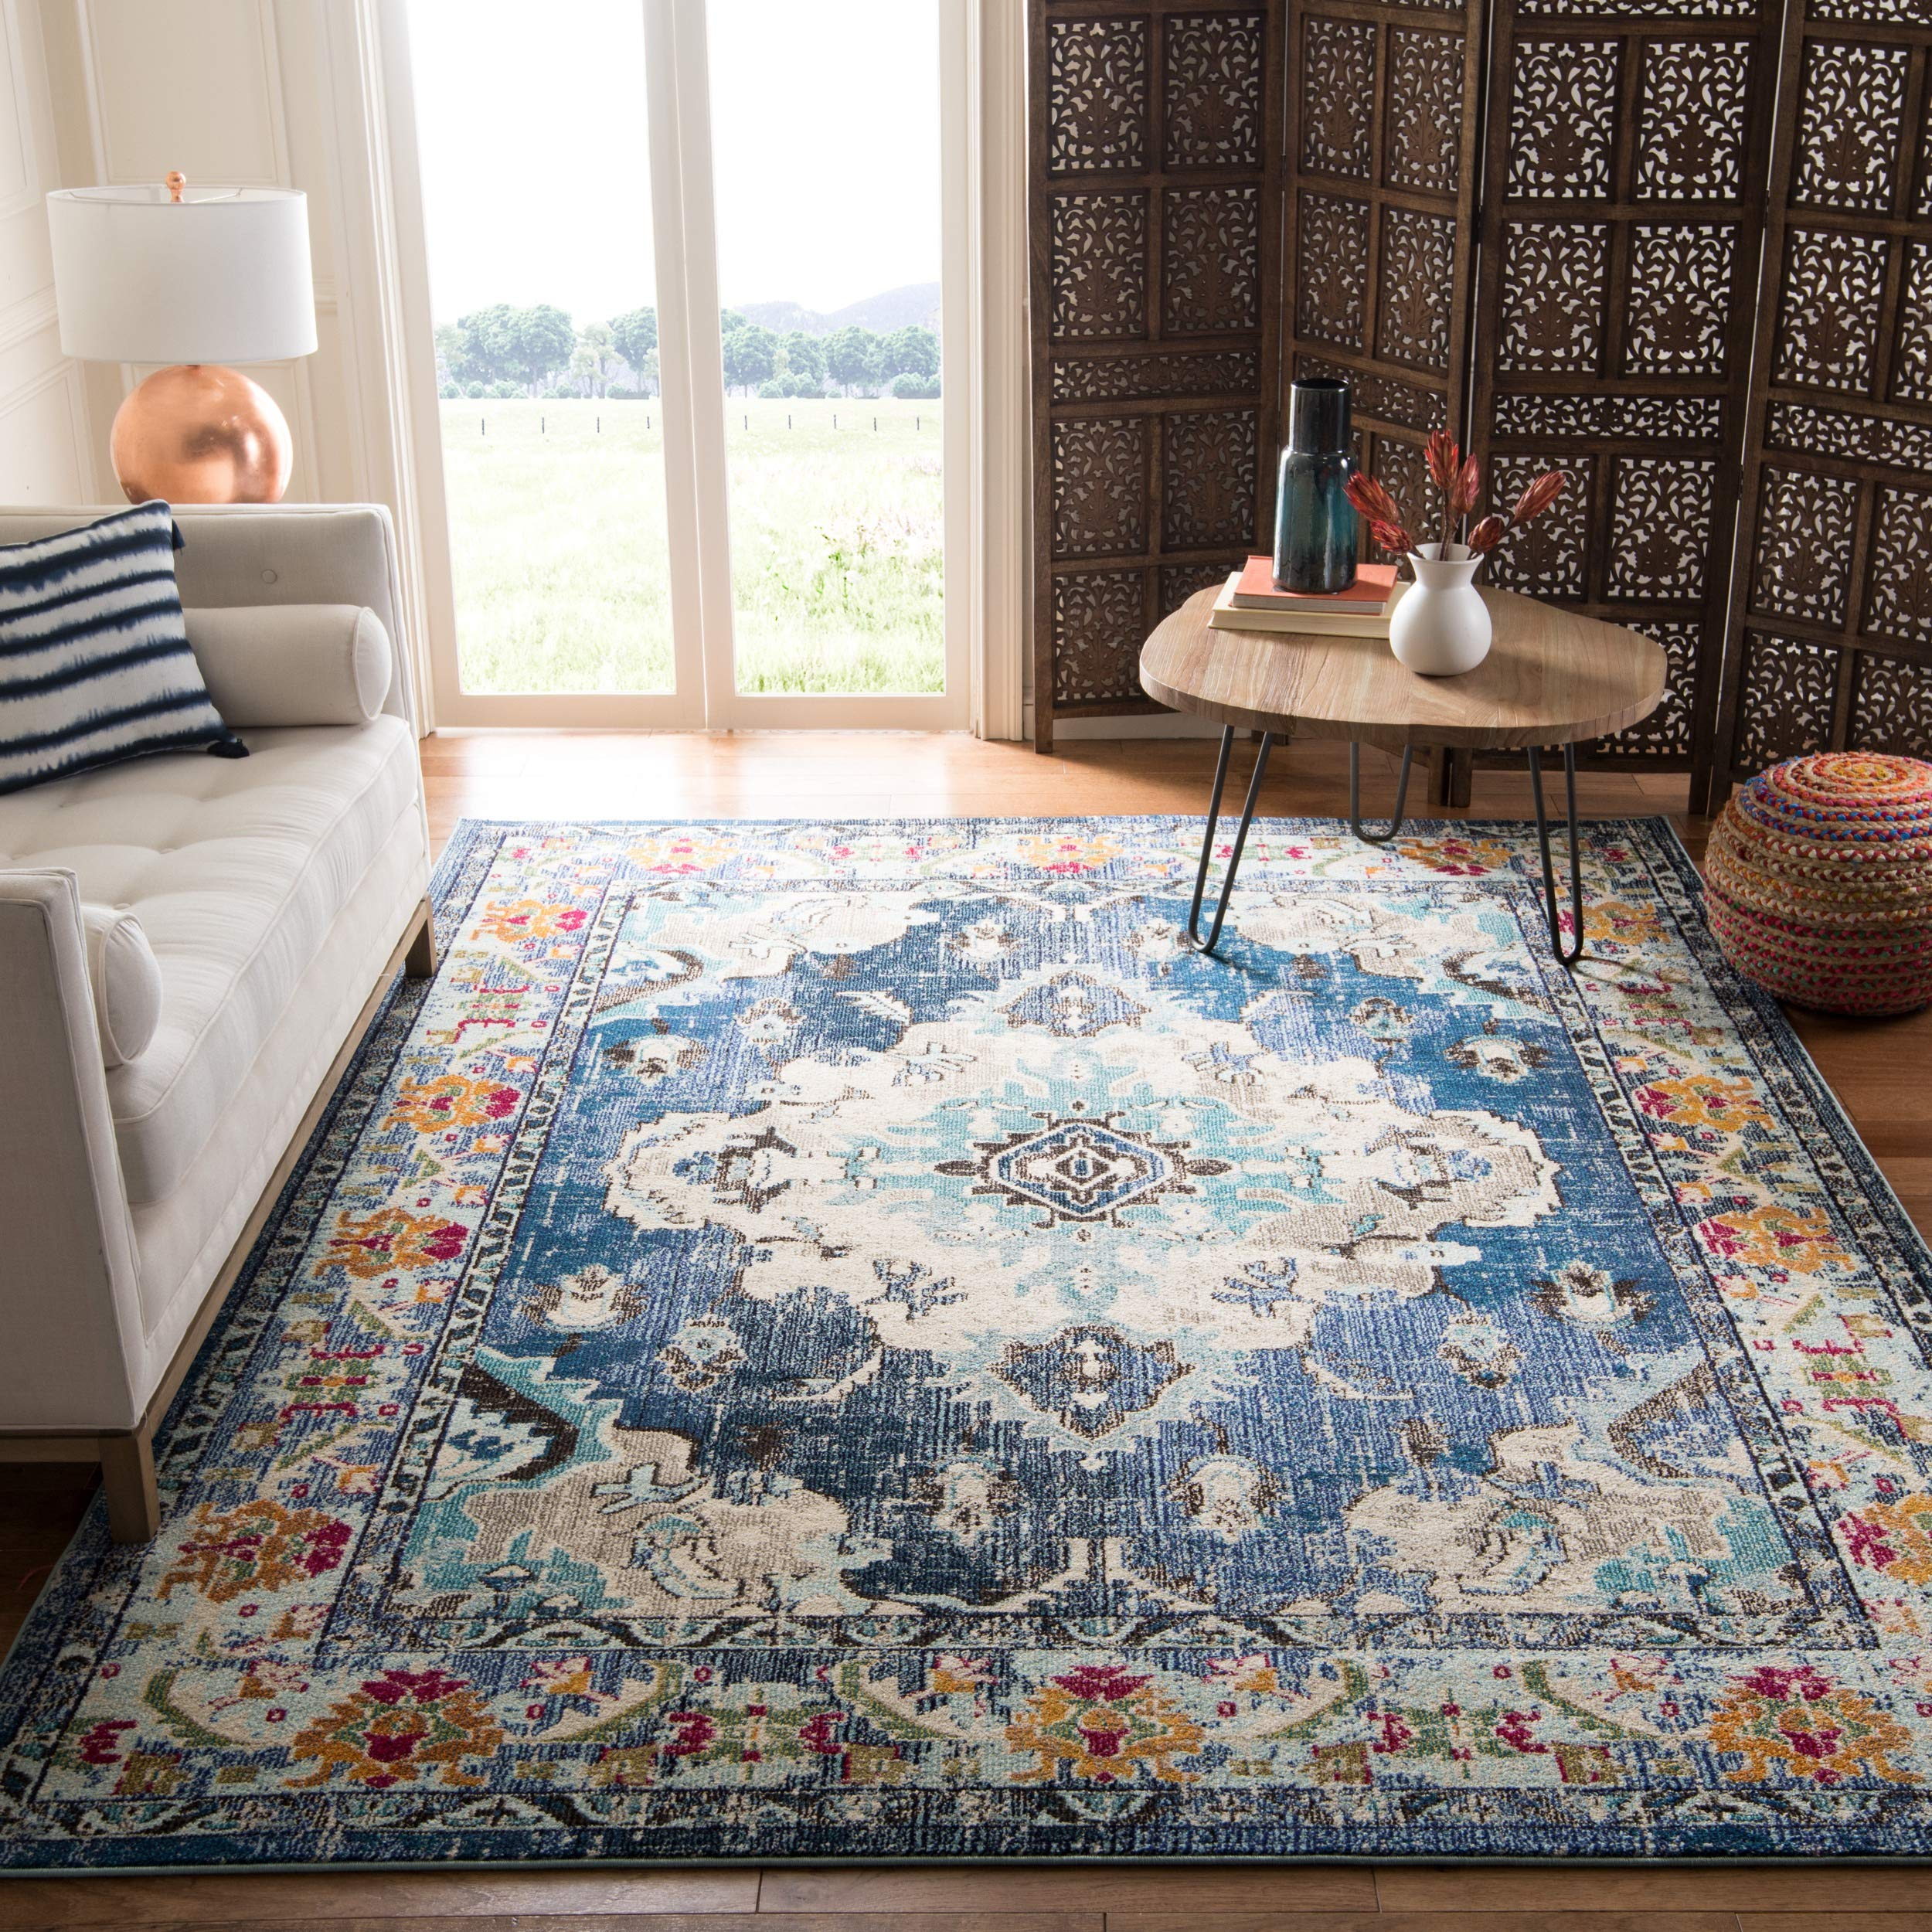 Safavieh Monaco Collection MNC243N Bohemian Chic Medallion Distressed Area Rug, 8' x 10', Navy/Light Blue product image